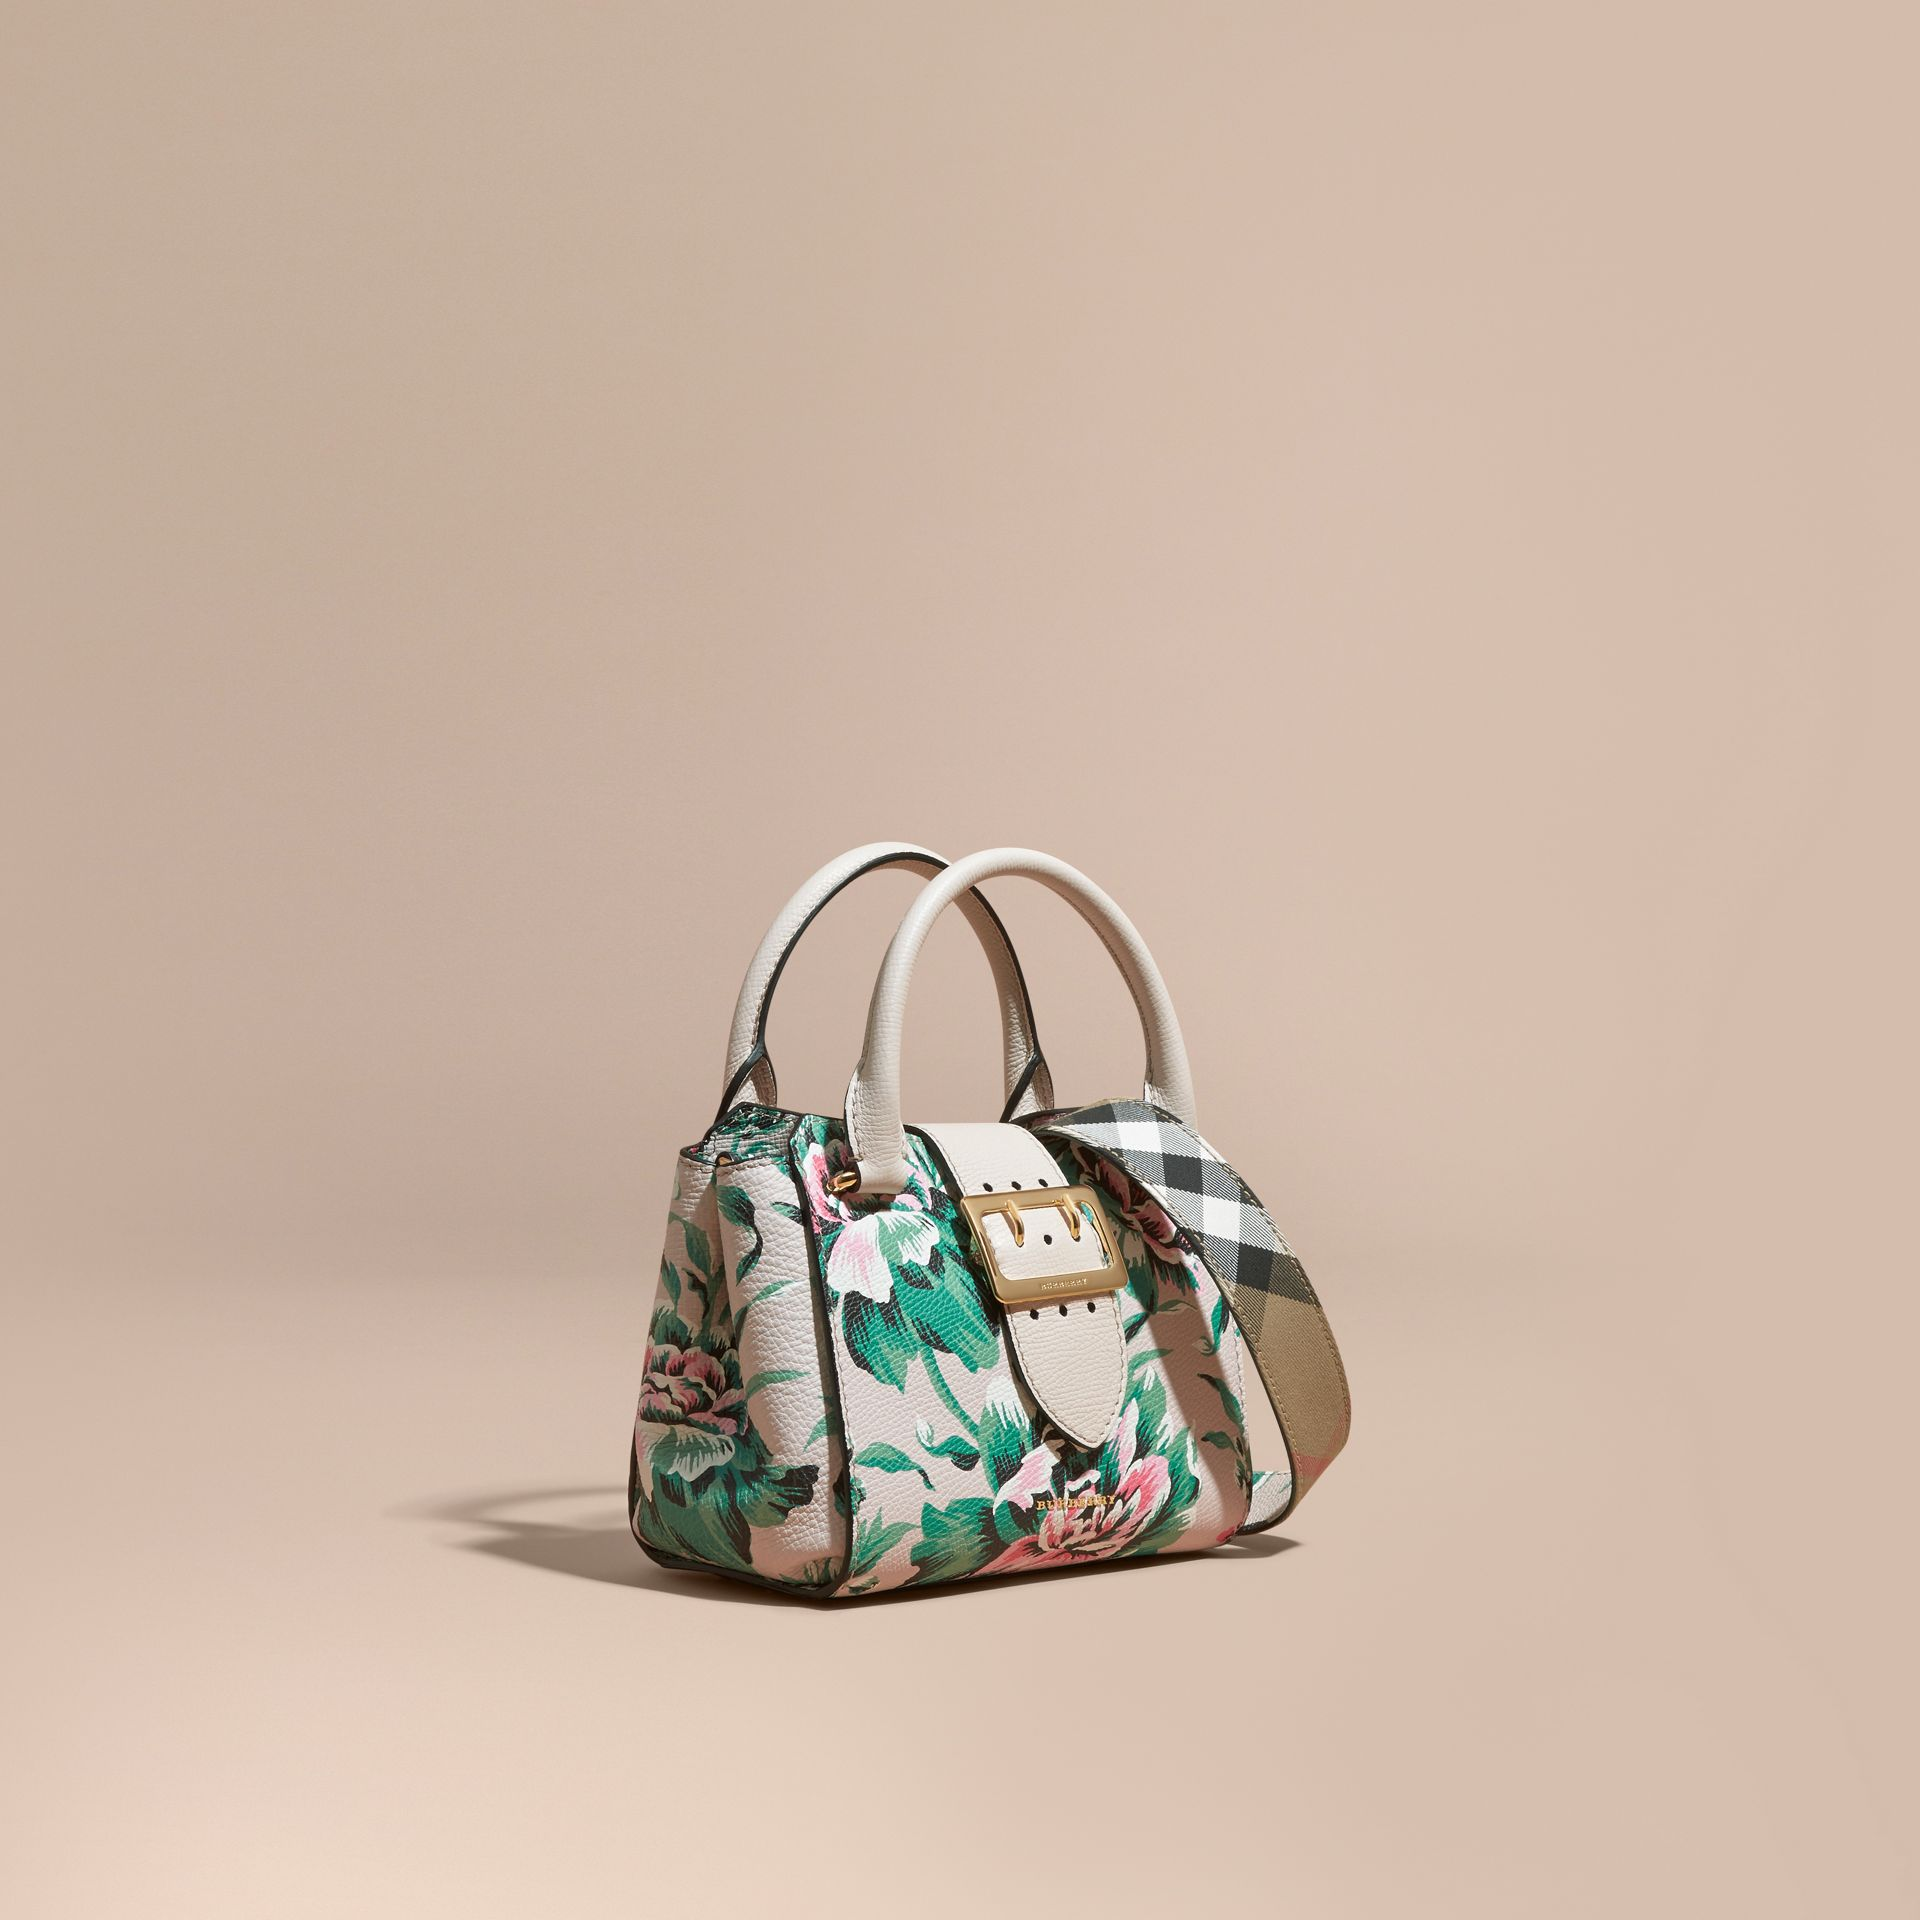 Natural/emerald green The Small Buckle Tote in Peony Rose Print Leather Natural/emerald Green - gallery image 1